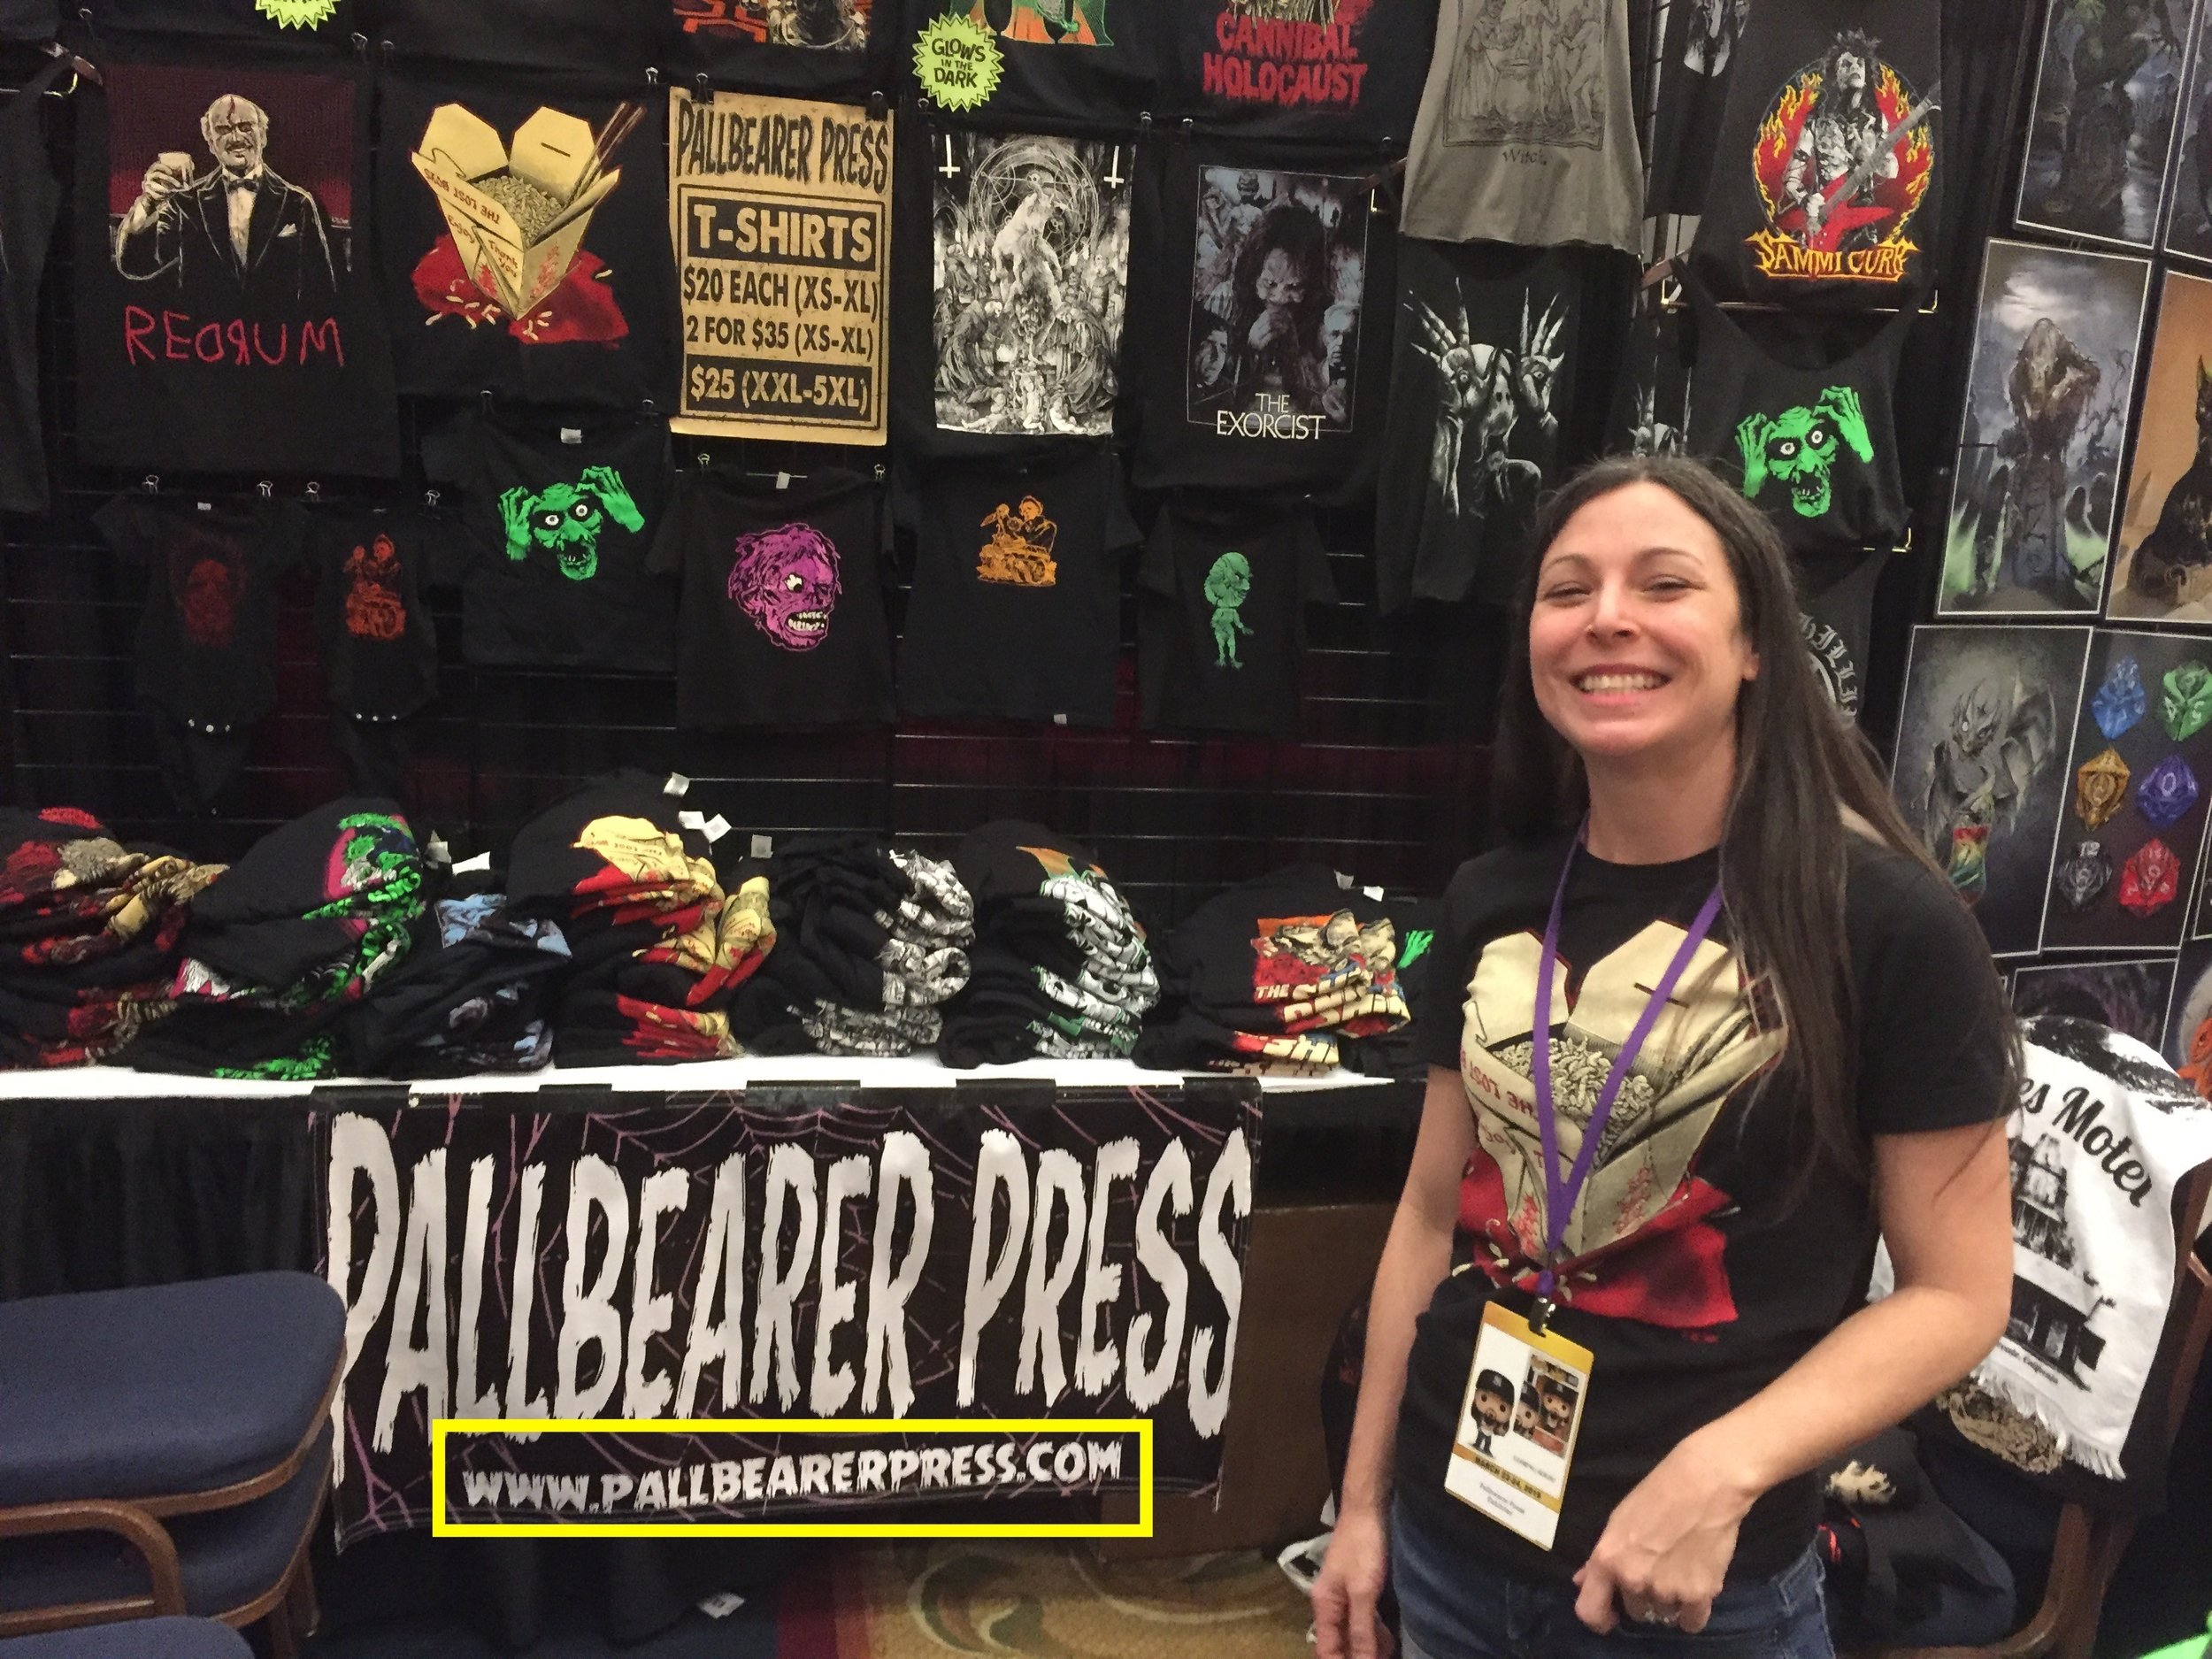 I usually pick up something from the nice folks at Pallbearer Press. I highlighted the website in the image.  Go there! Now!